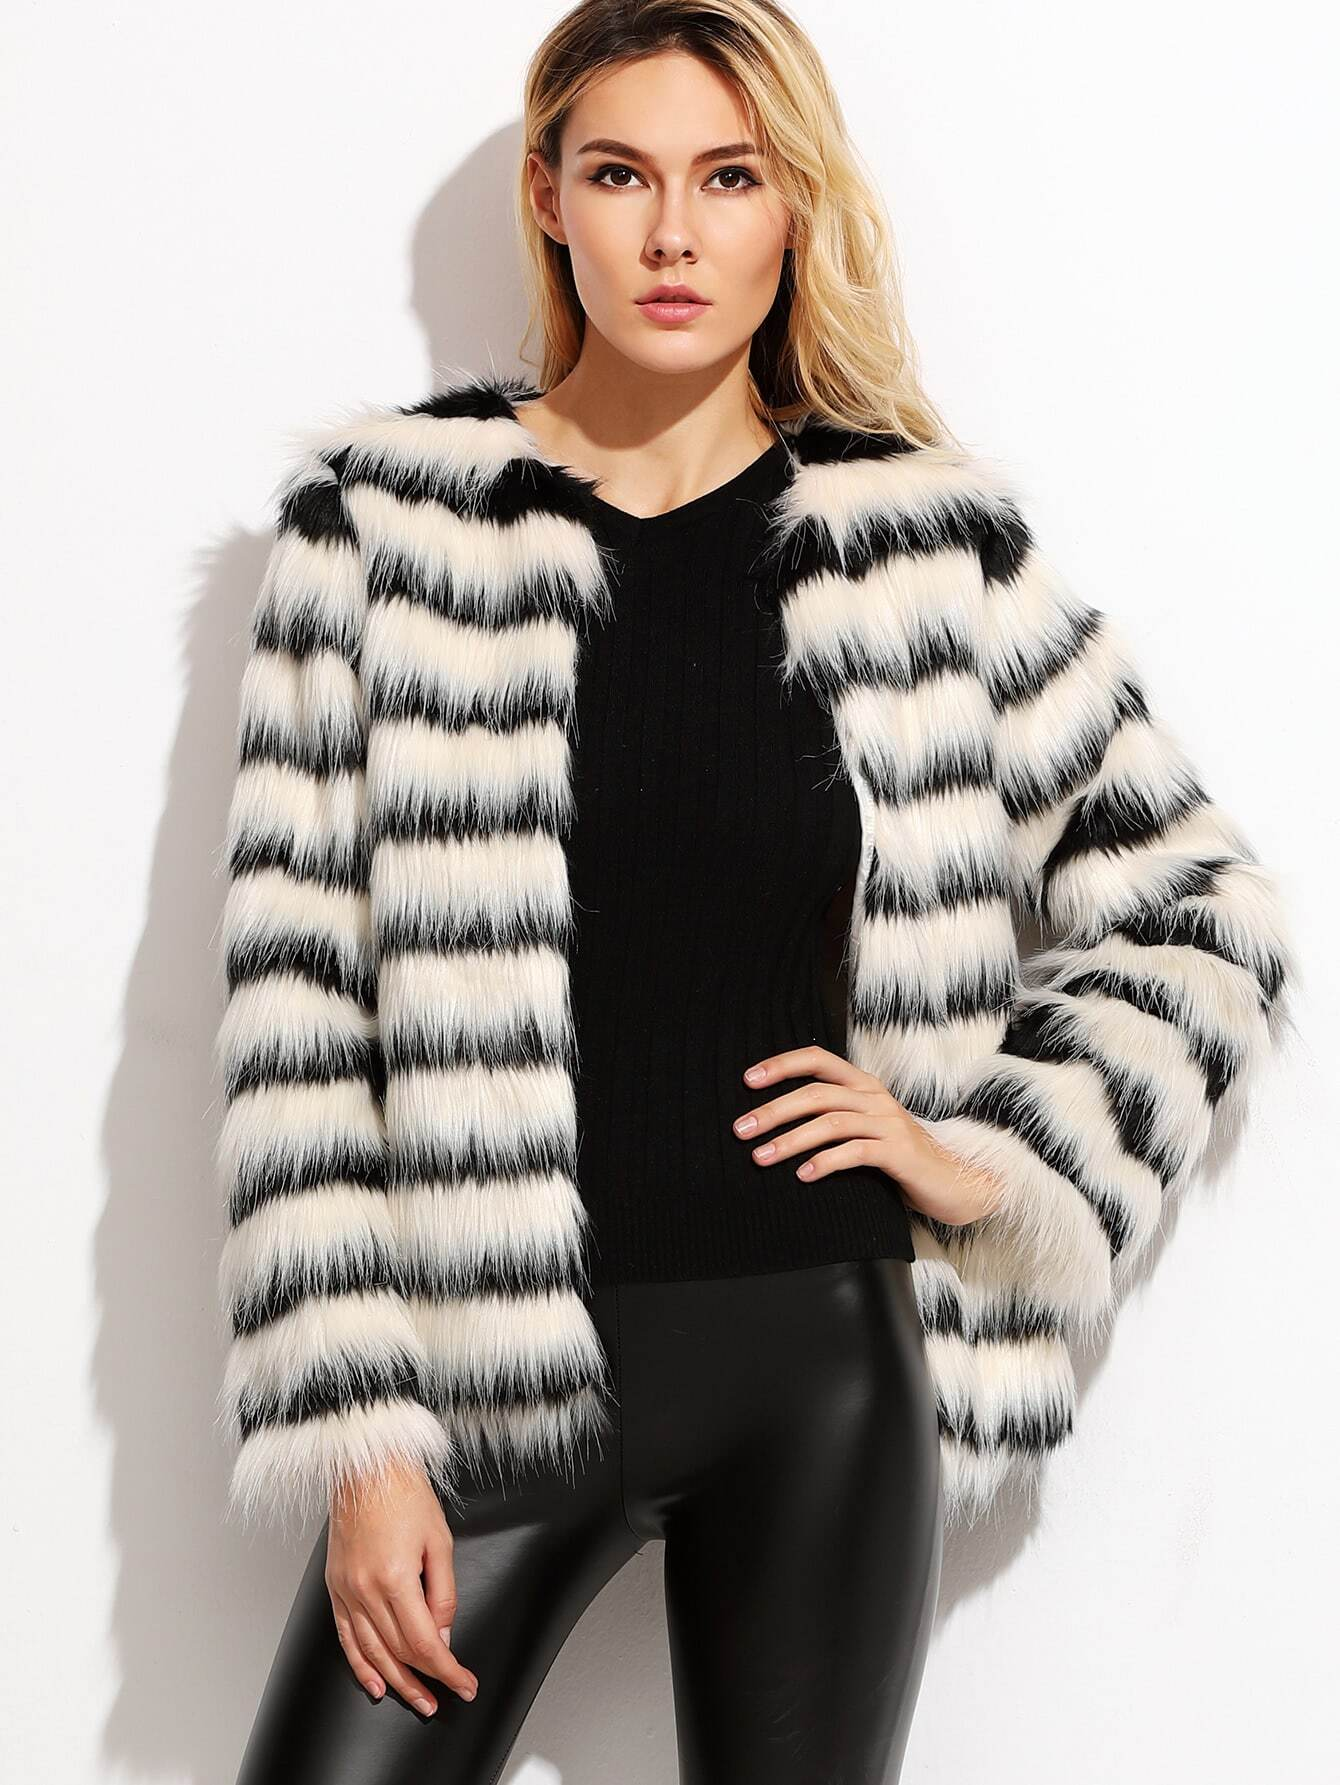 Coats Black and White Faux Fur Collarless Elegant Short Winter Striped Fabric has no stretch Long Sleeve Outerwear.